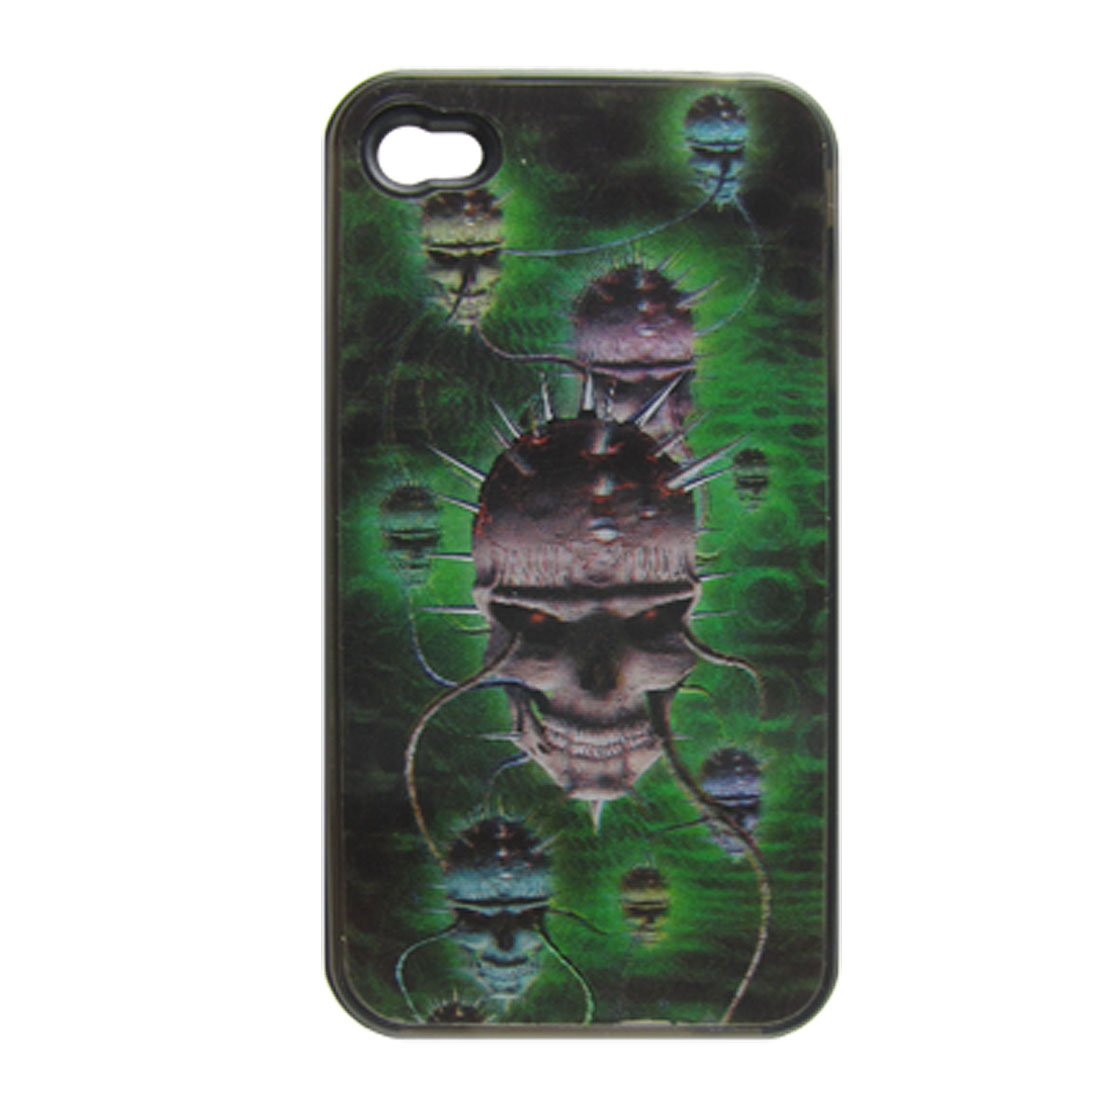 3D Skull Print Style Hard Plastic Back Cover for iPhone 4 4G